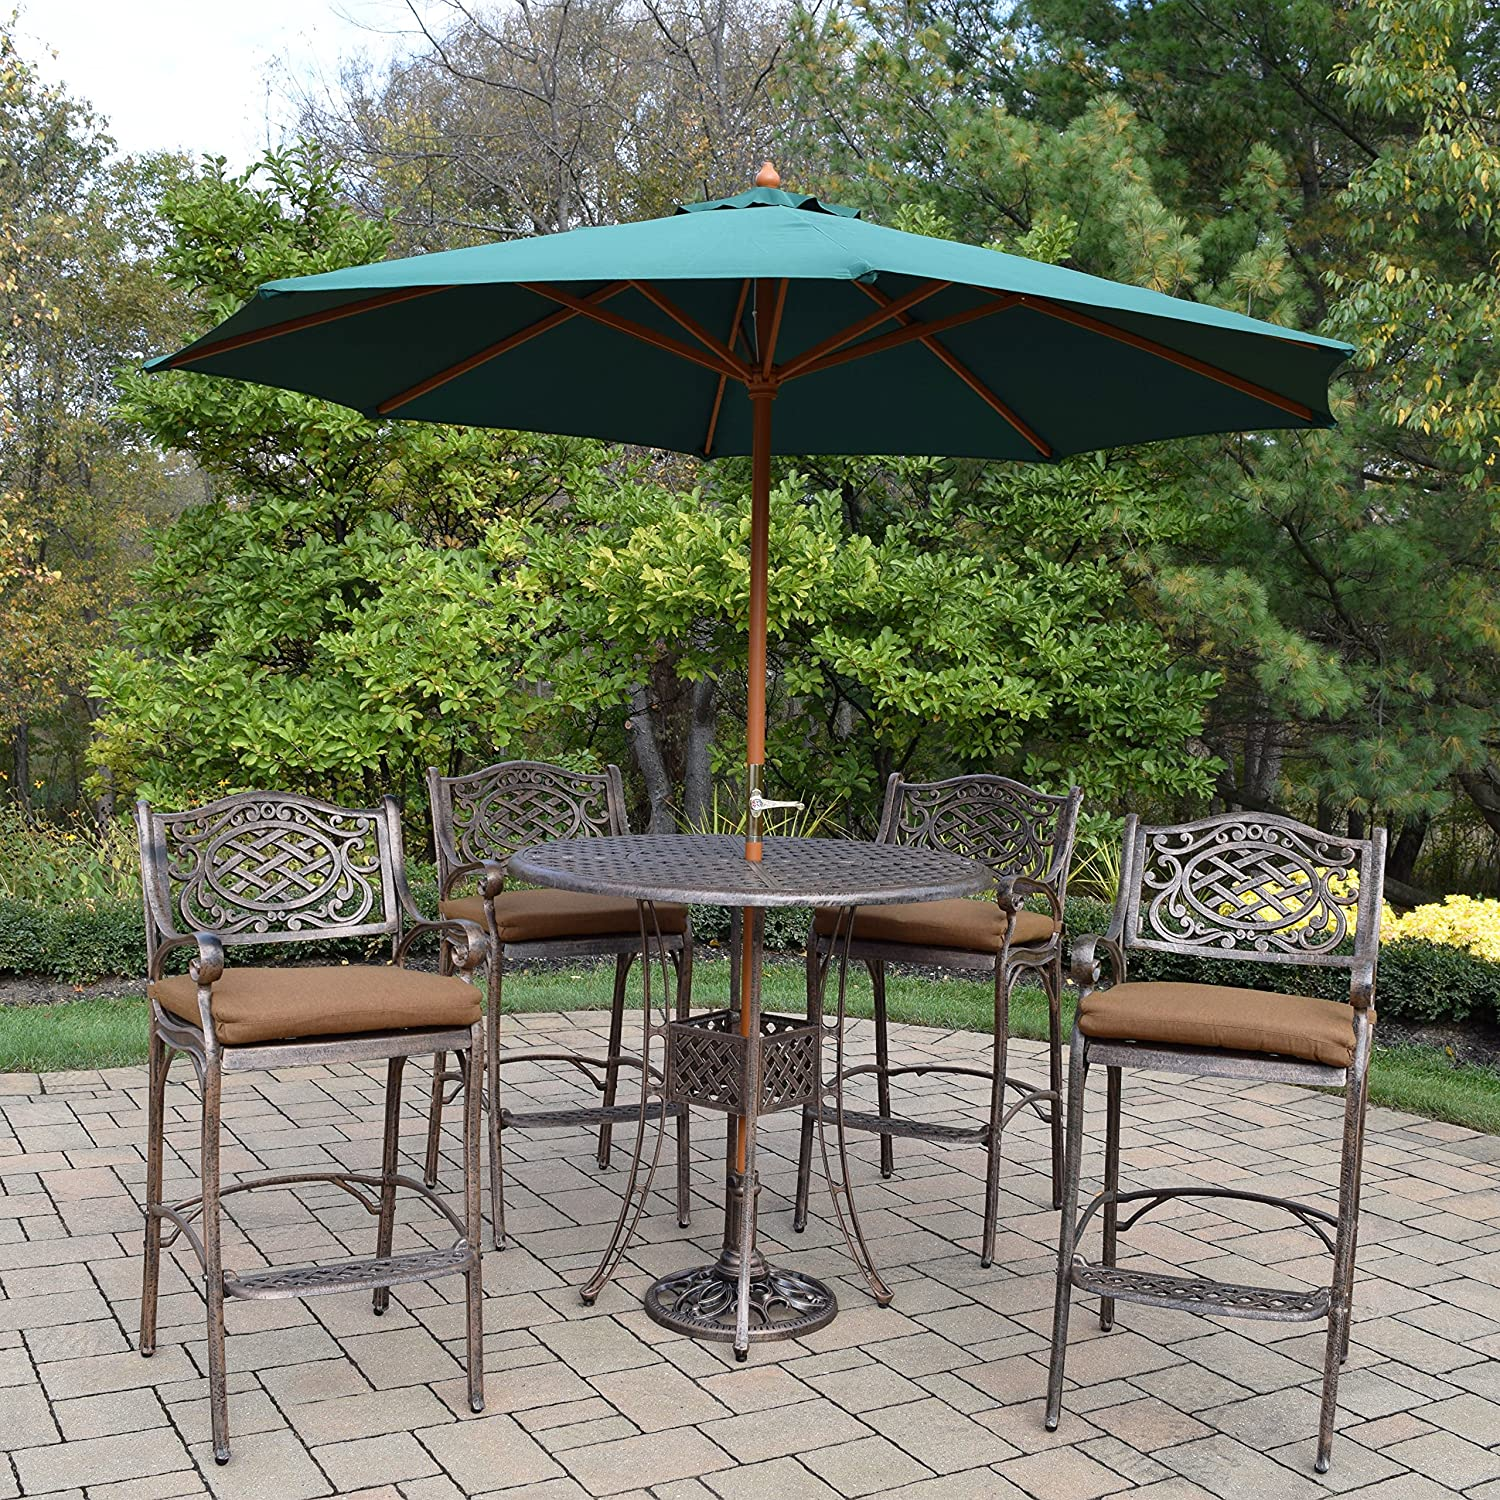 Amazon Com Oakland Living Ice Cooler Carts Az1101bt 2110bc4 D54 4001gn 4101ab 11 Ab Elite Mississippi Bar Set With Table Sunbrella Cushioned Bar Stools Crank Wooden Umbrella And Stand Antique Bronze Garden Outdoor